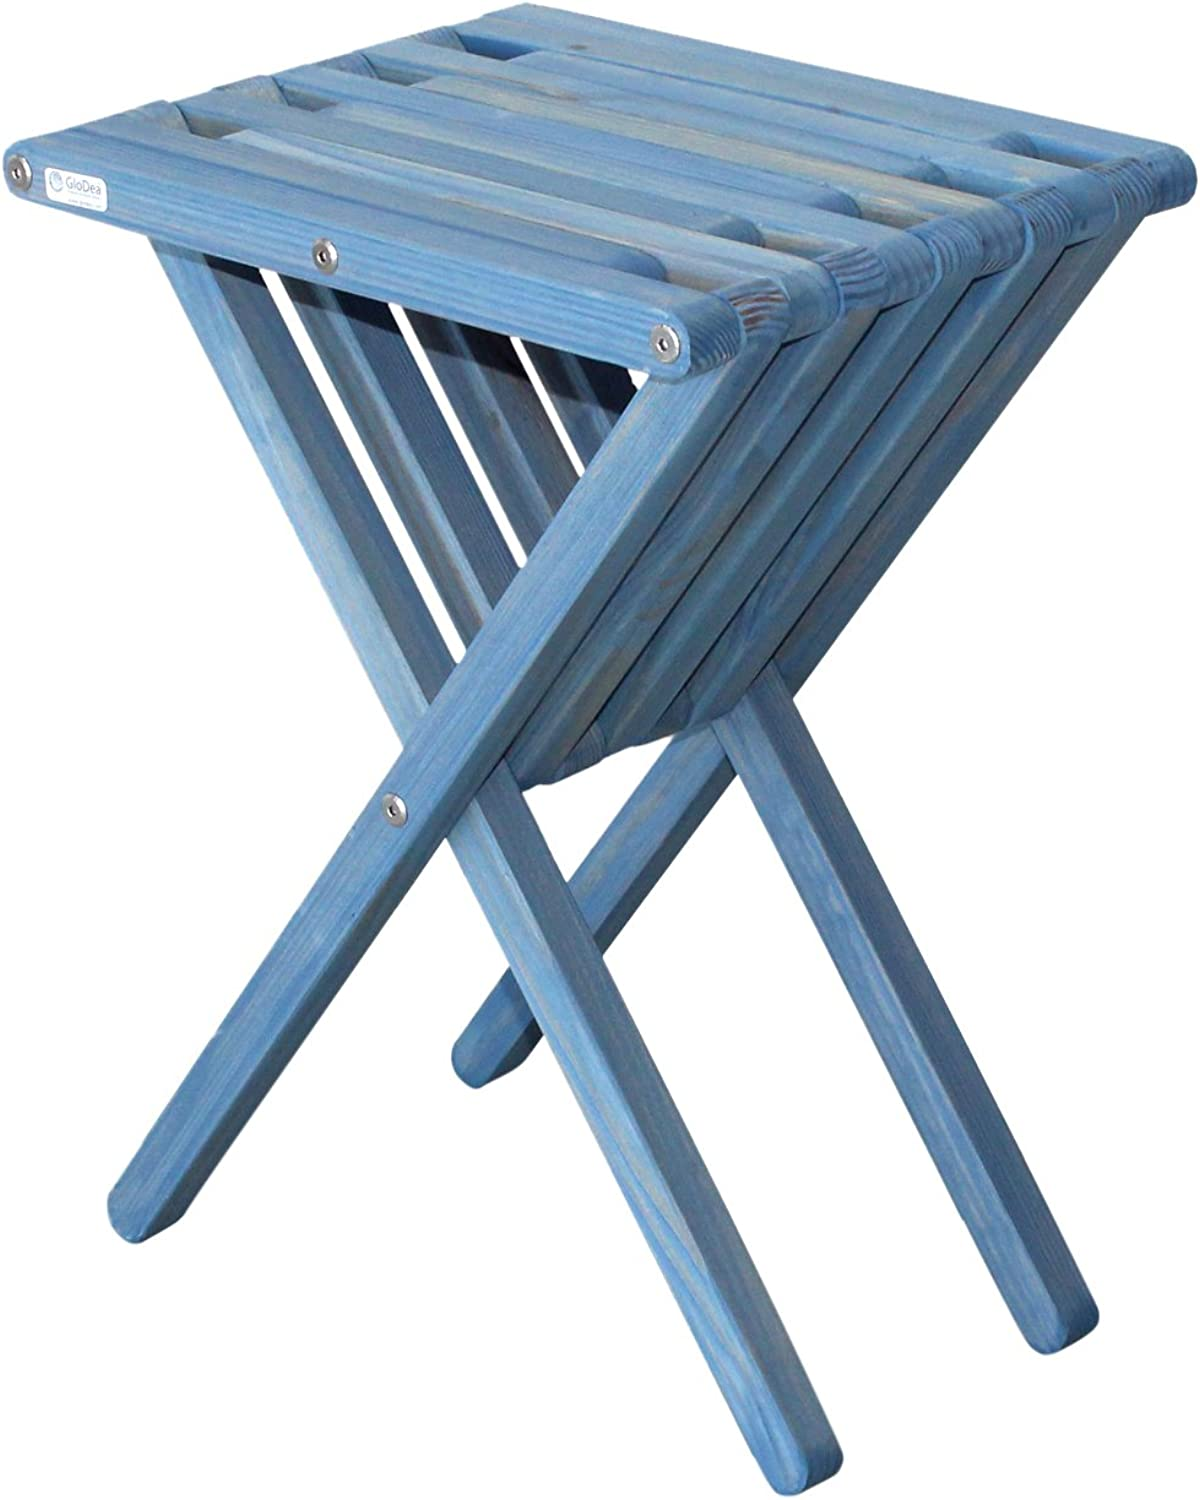 GloDea Furniture XQET45YPSB End Table X45, Sky bluee